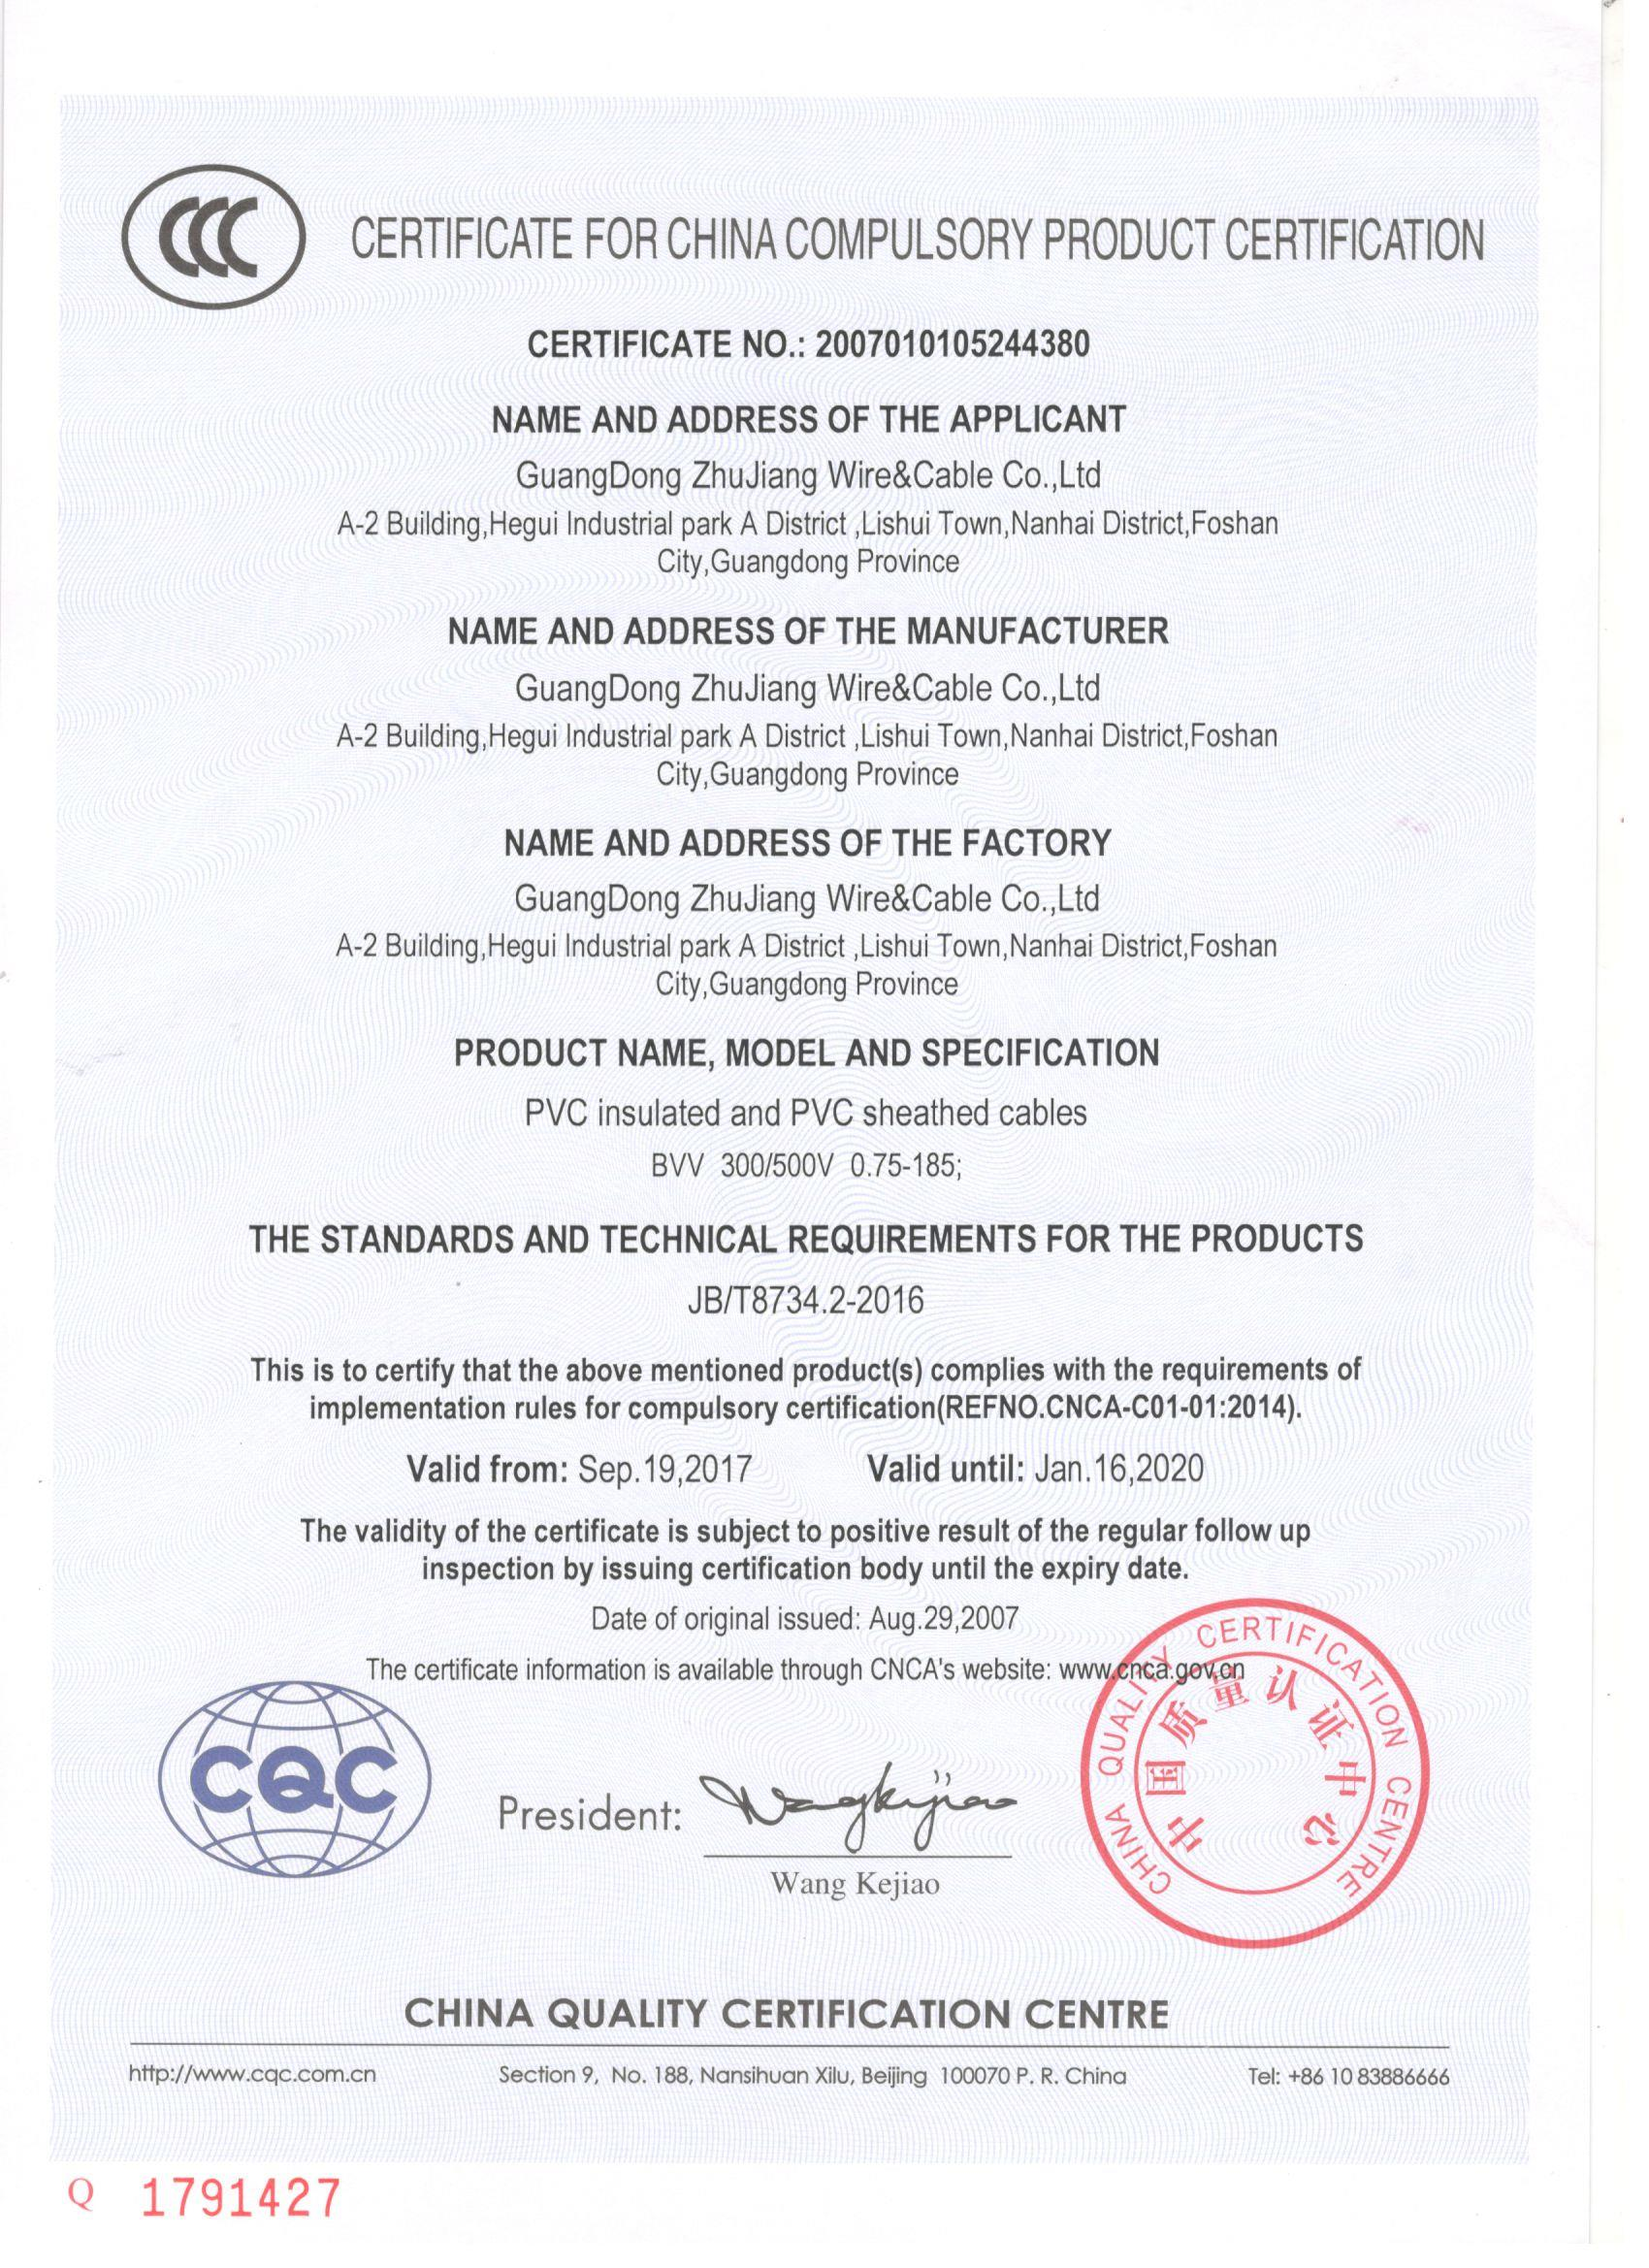 3C National Compulsory Product Certification (380-English)